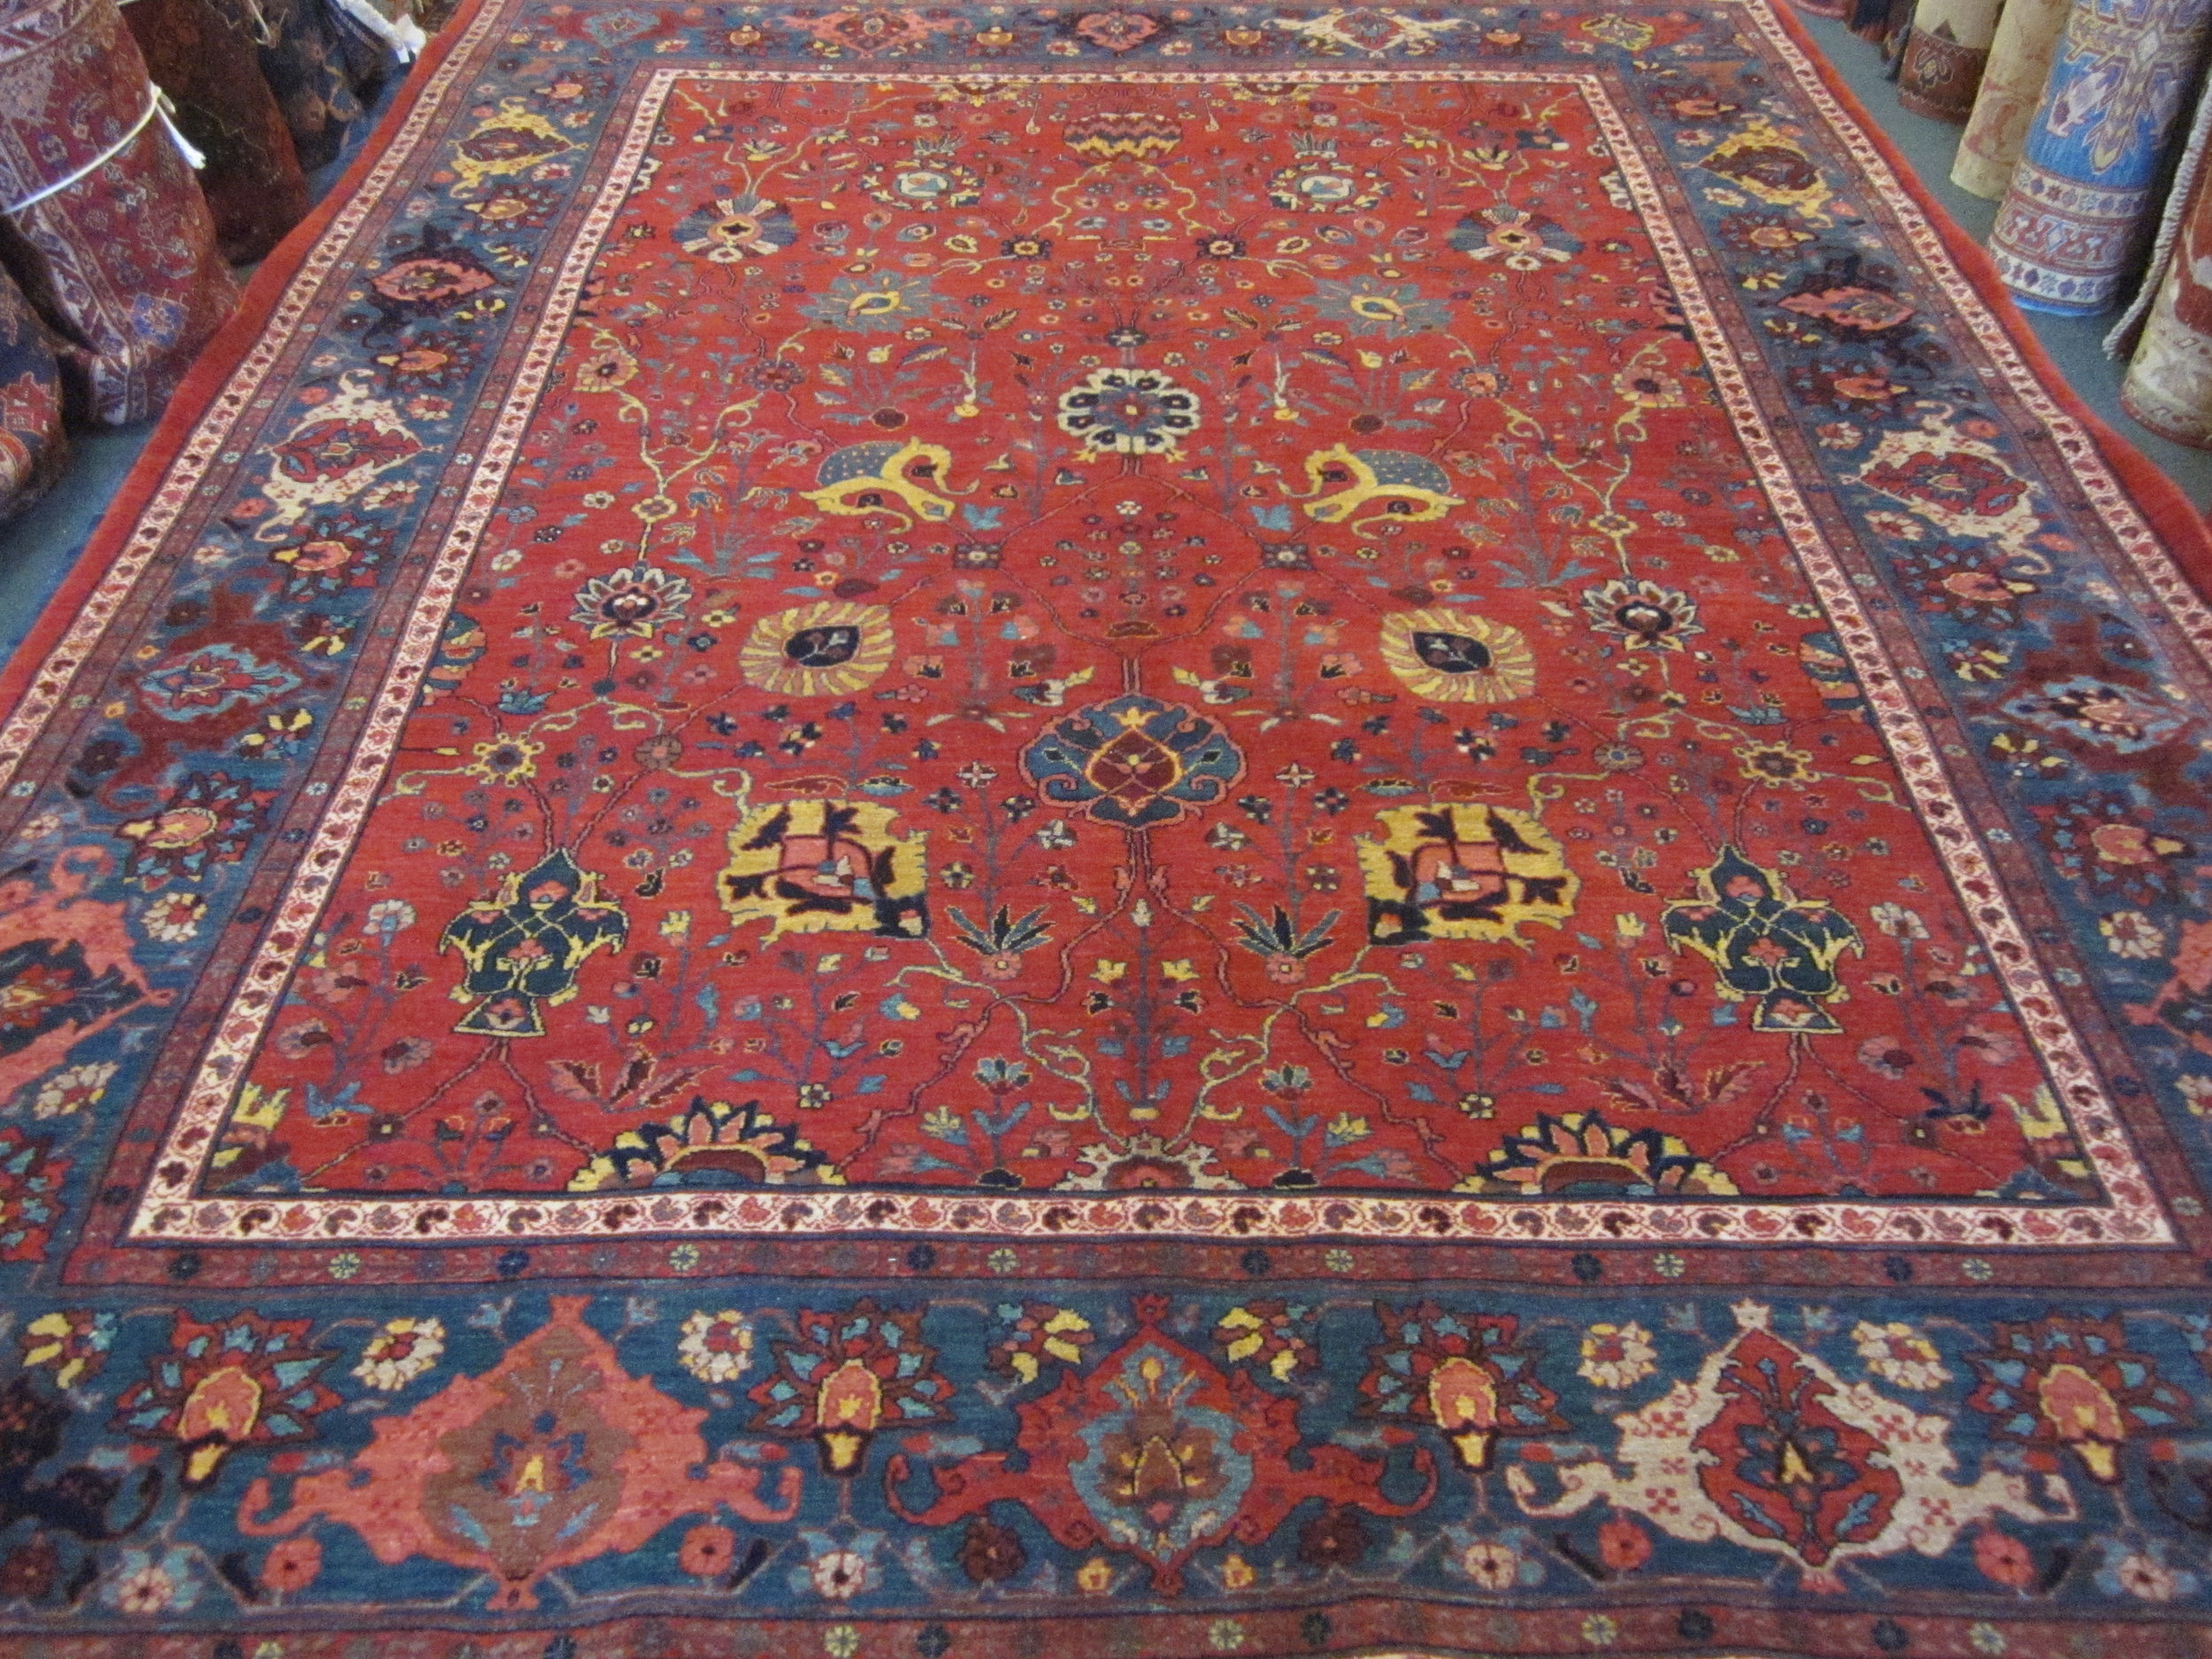 Photo: 8 x 11 Persian Bijar rug in the Shah Abbas design in red with jewel tones